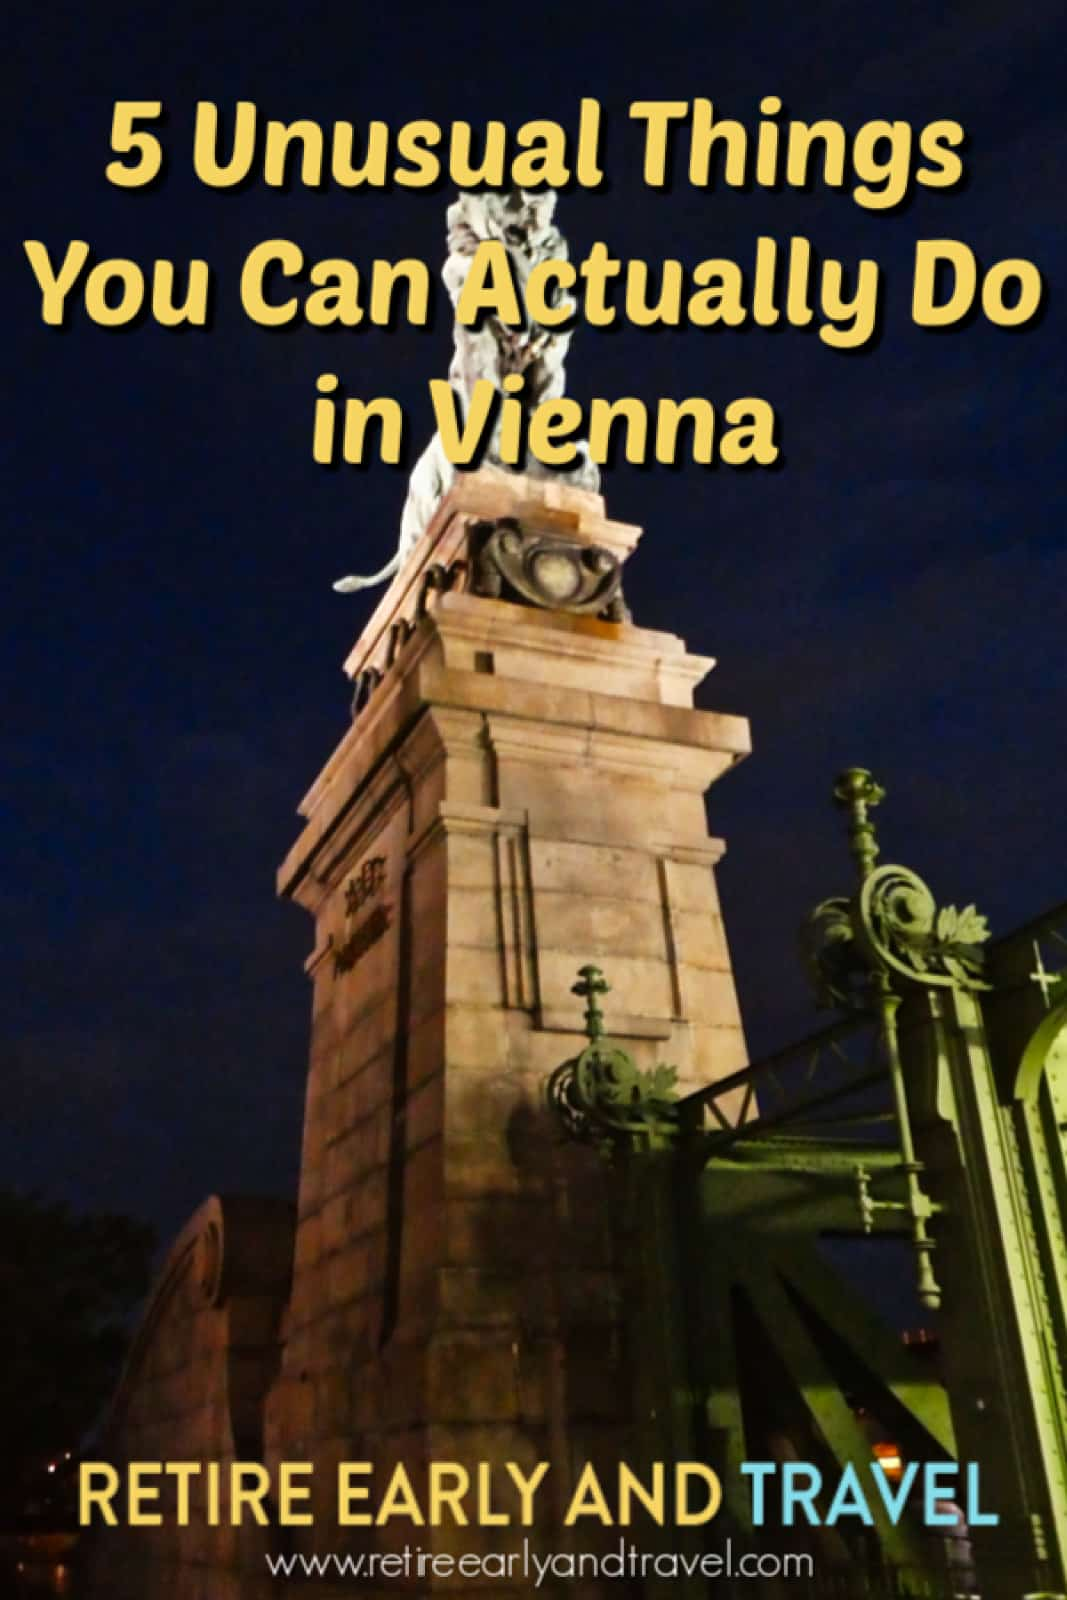 5 Unusual Things You Can Actually Do in Vienna